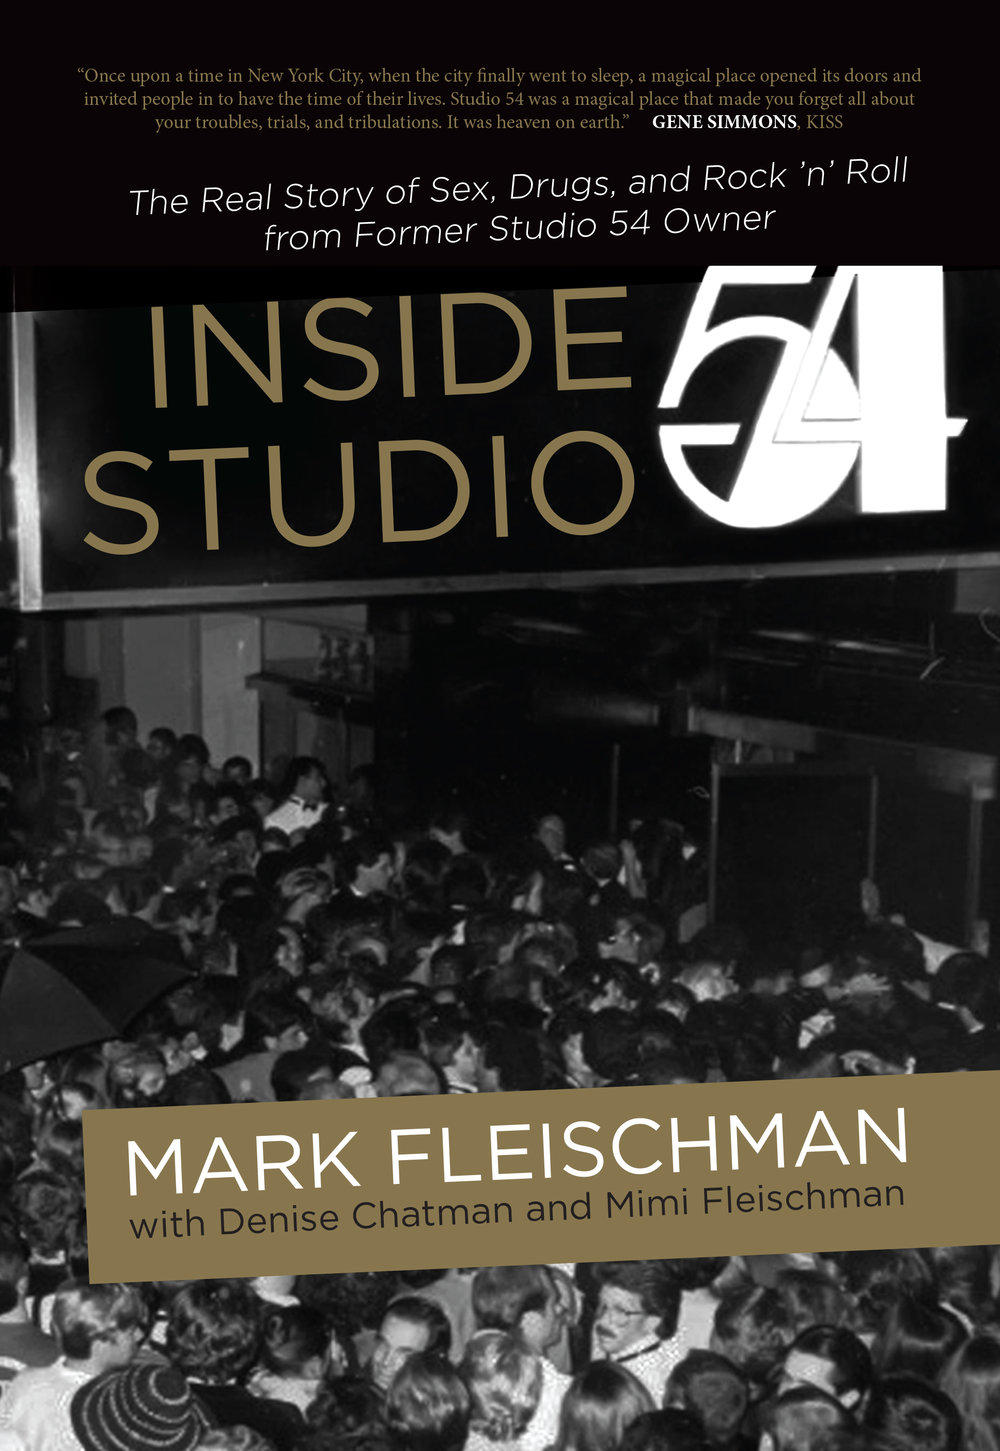 Inside Studio 54 Final Front Cover RGB 300dpi.jpg